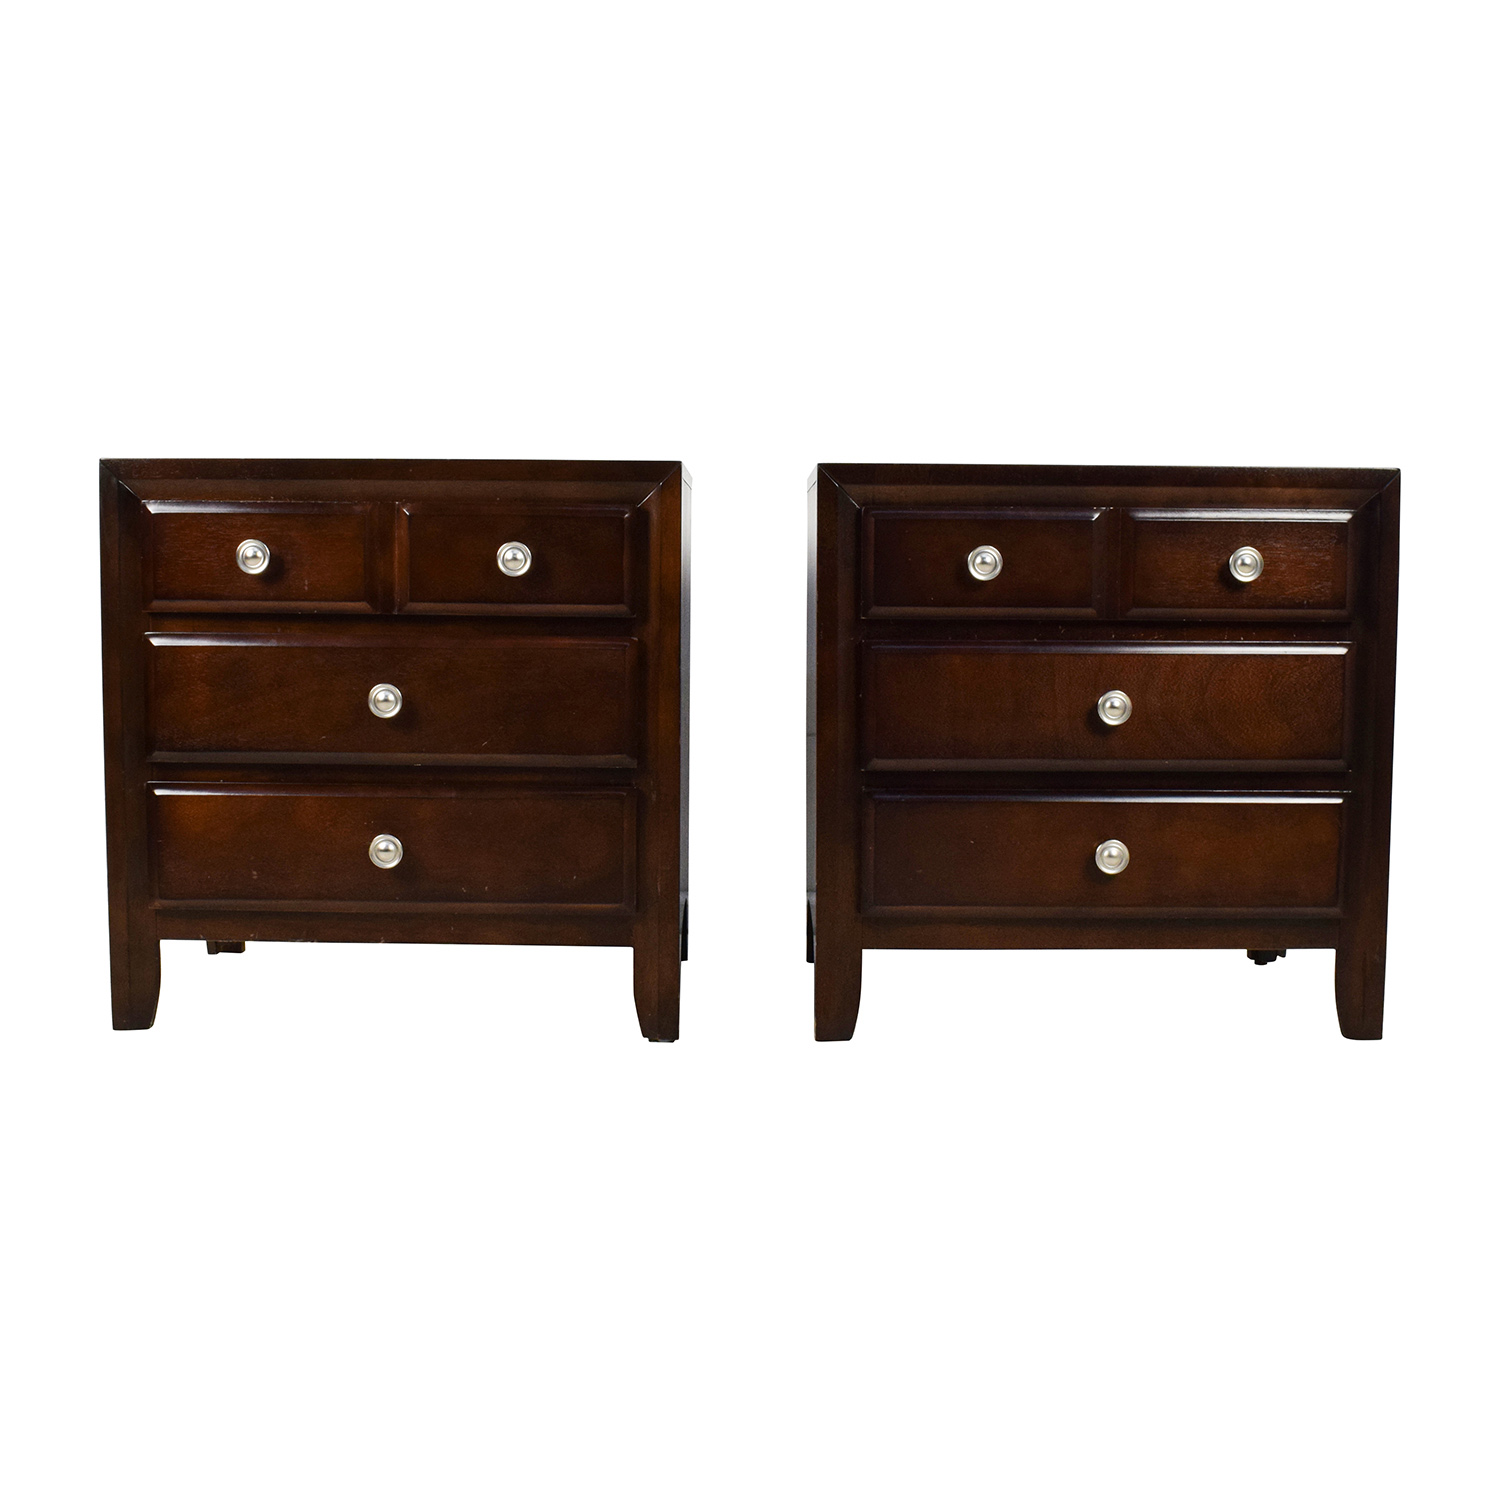 Raymour and Flanigan Raymour & Flanigan Three Drawer Wood Nightstands